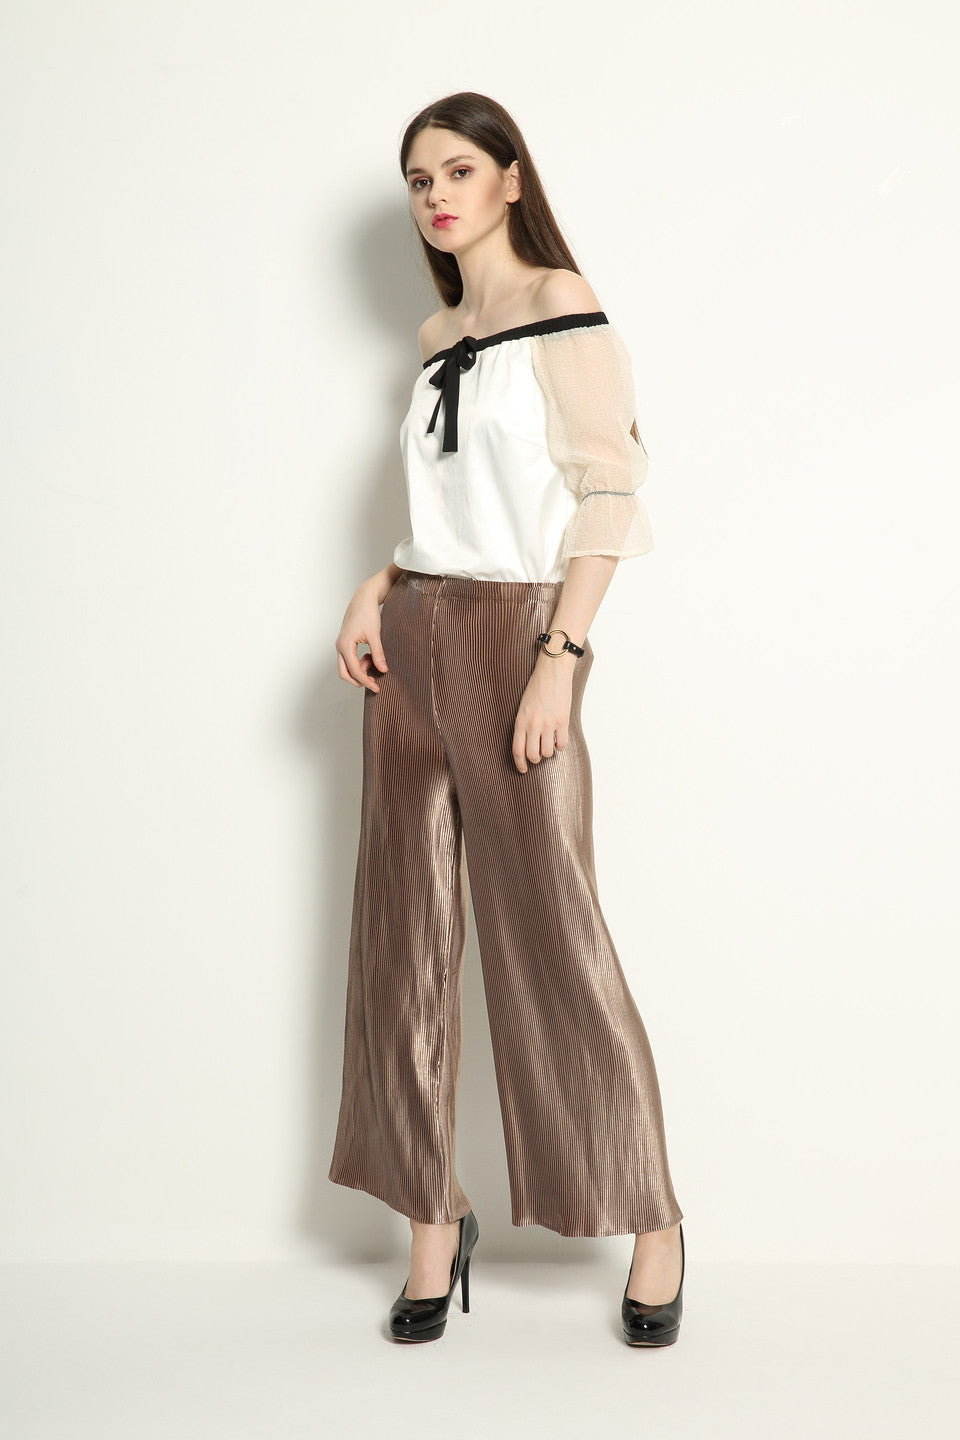 Metallic Pleat Trousers - GlanceZ   - 2